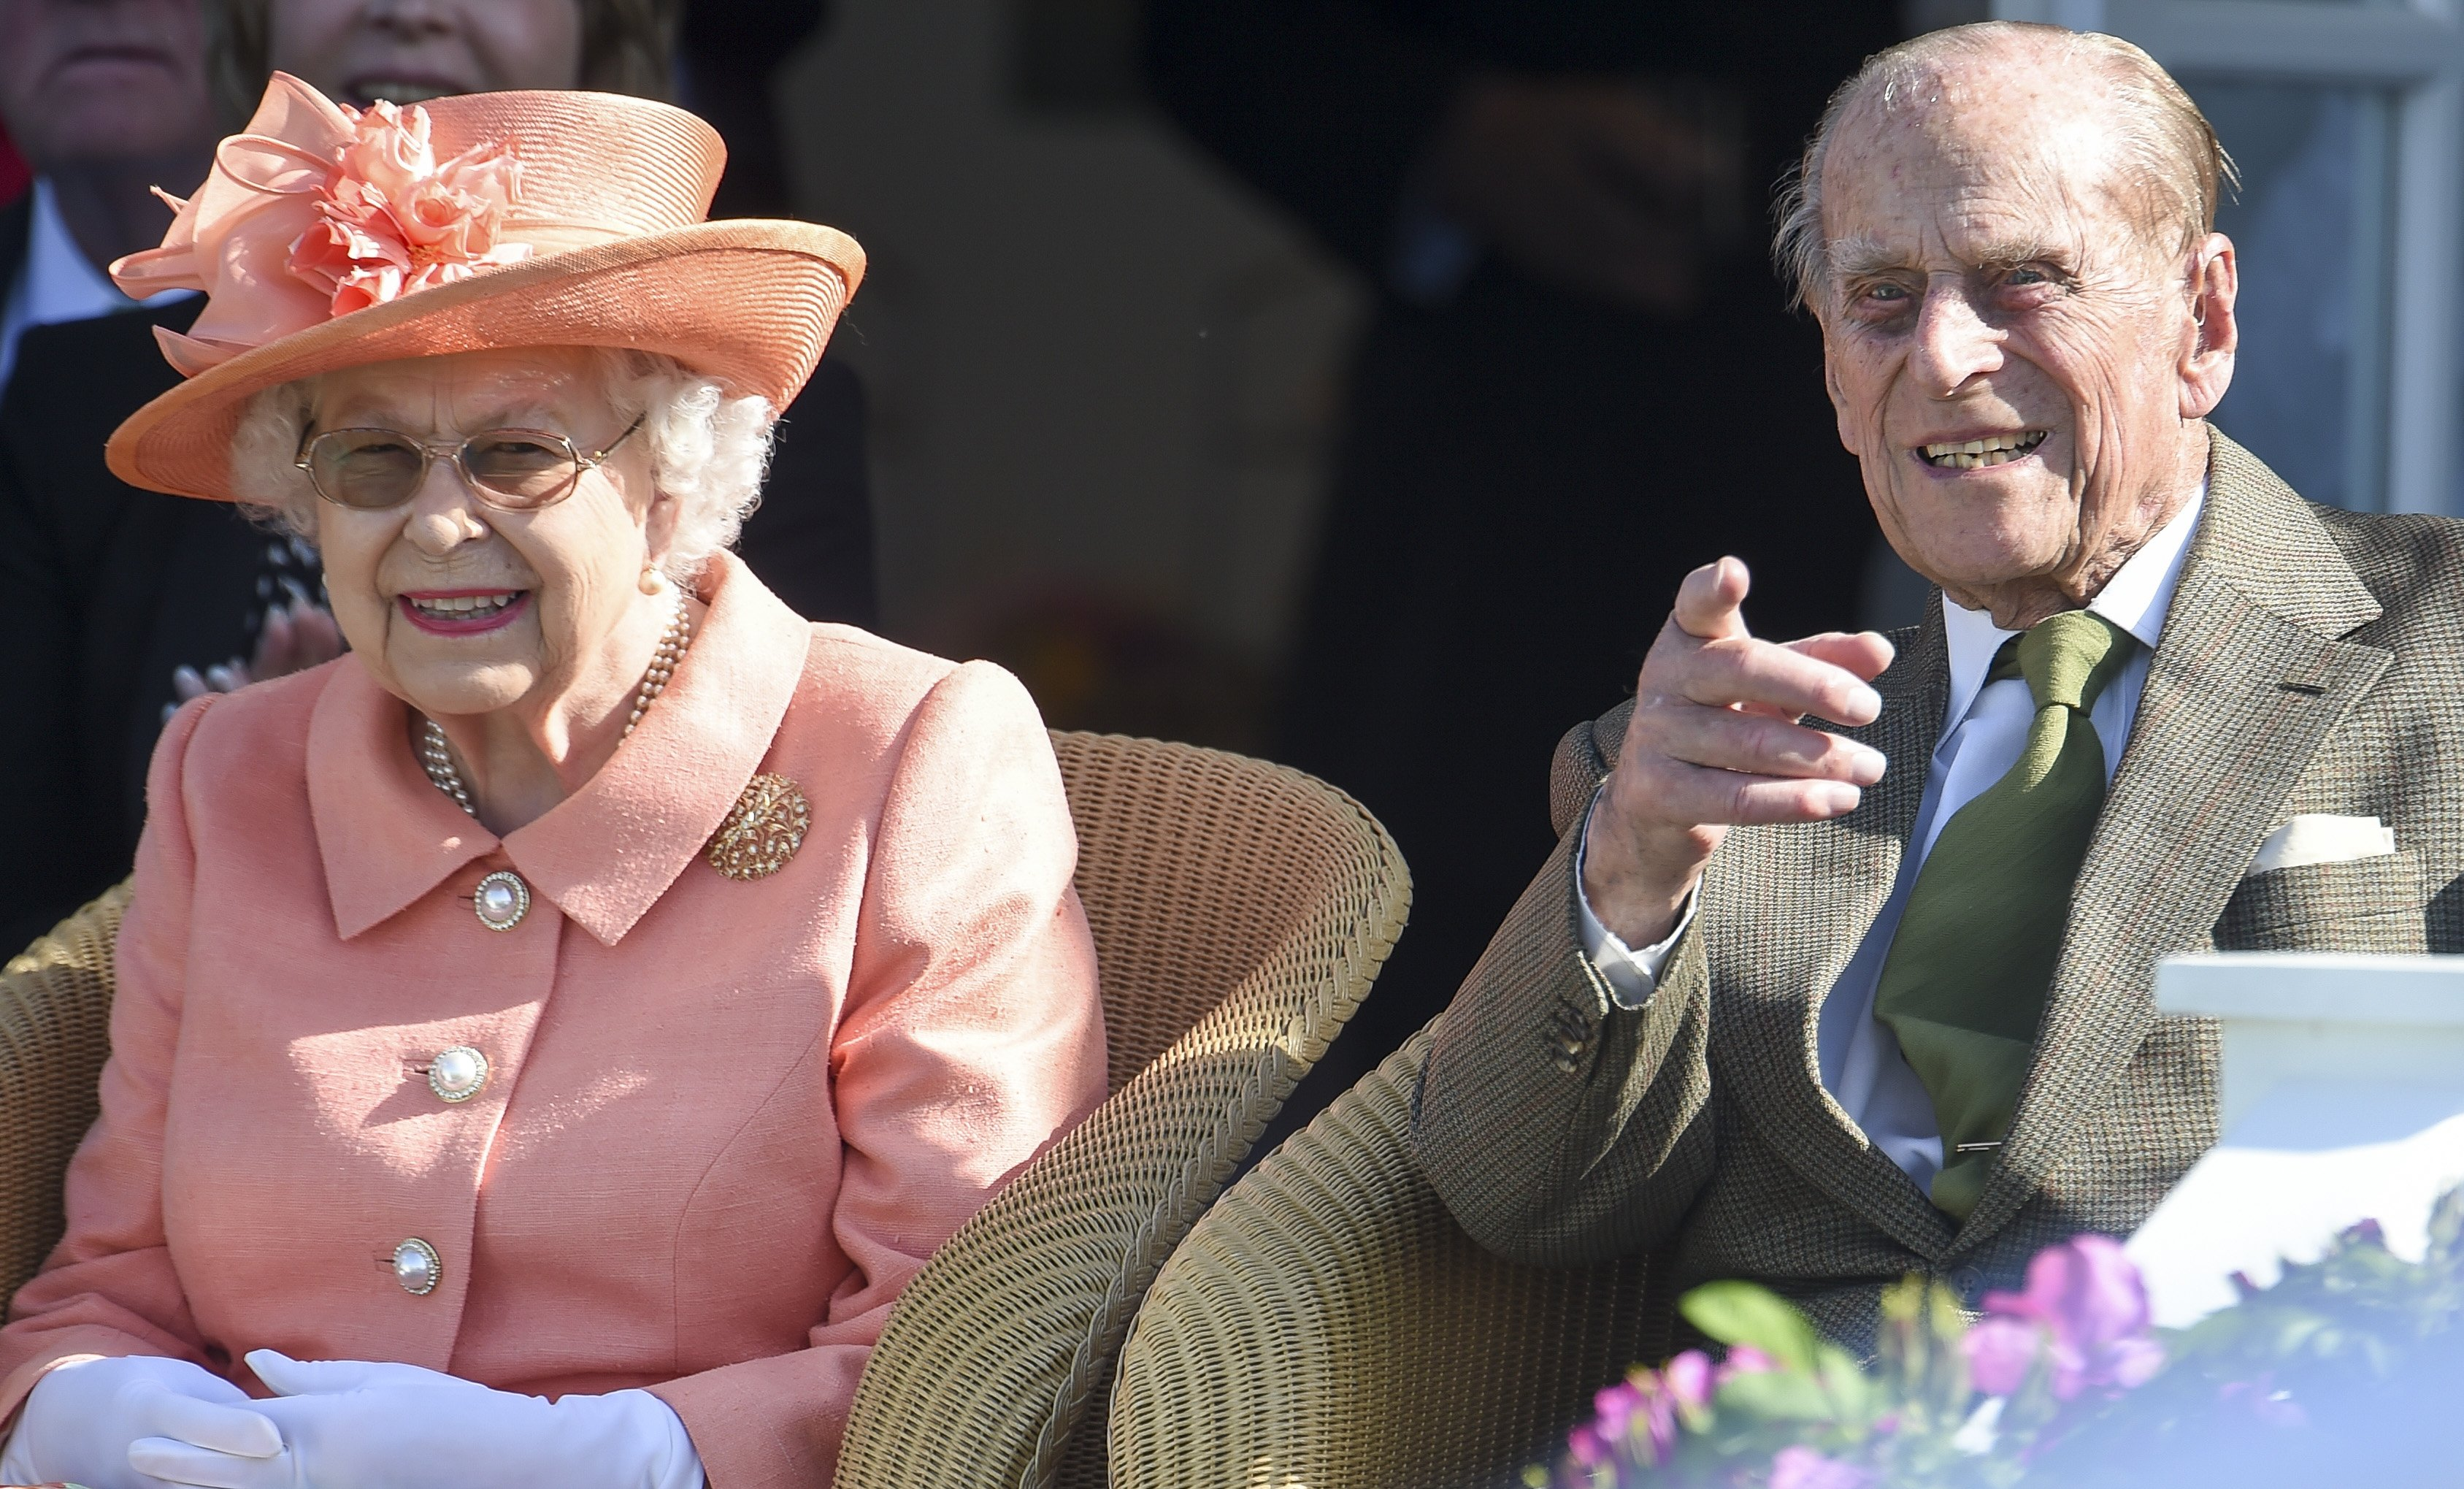 Queen Elizabeth II and Prince Philip | Photo: Getty Images